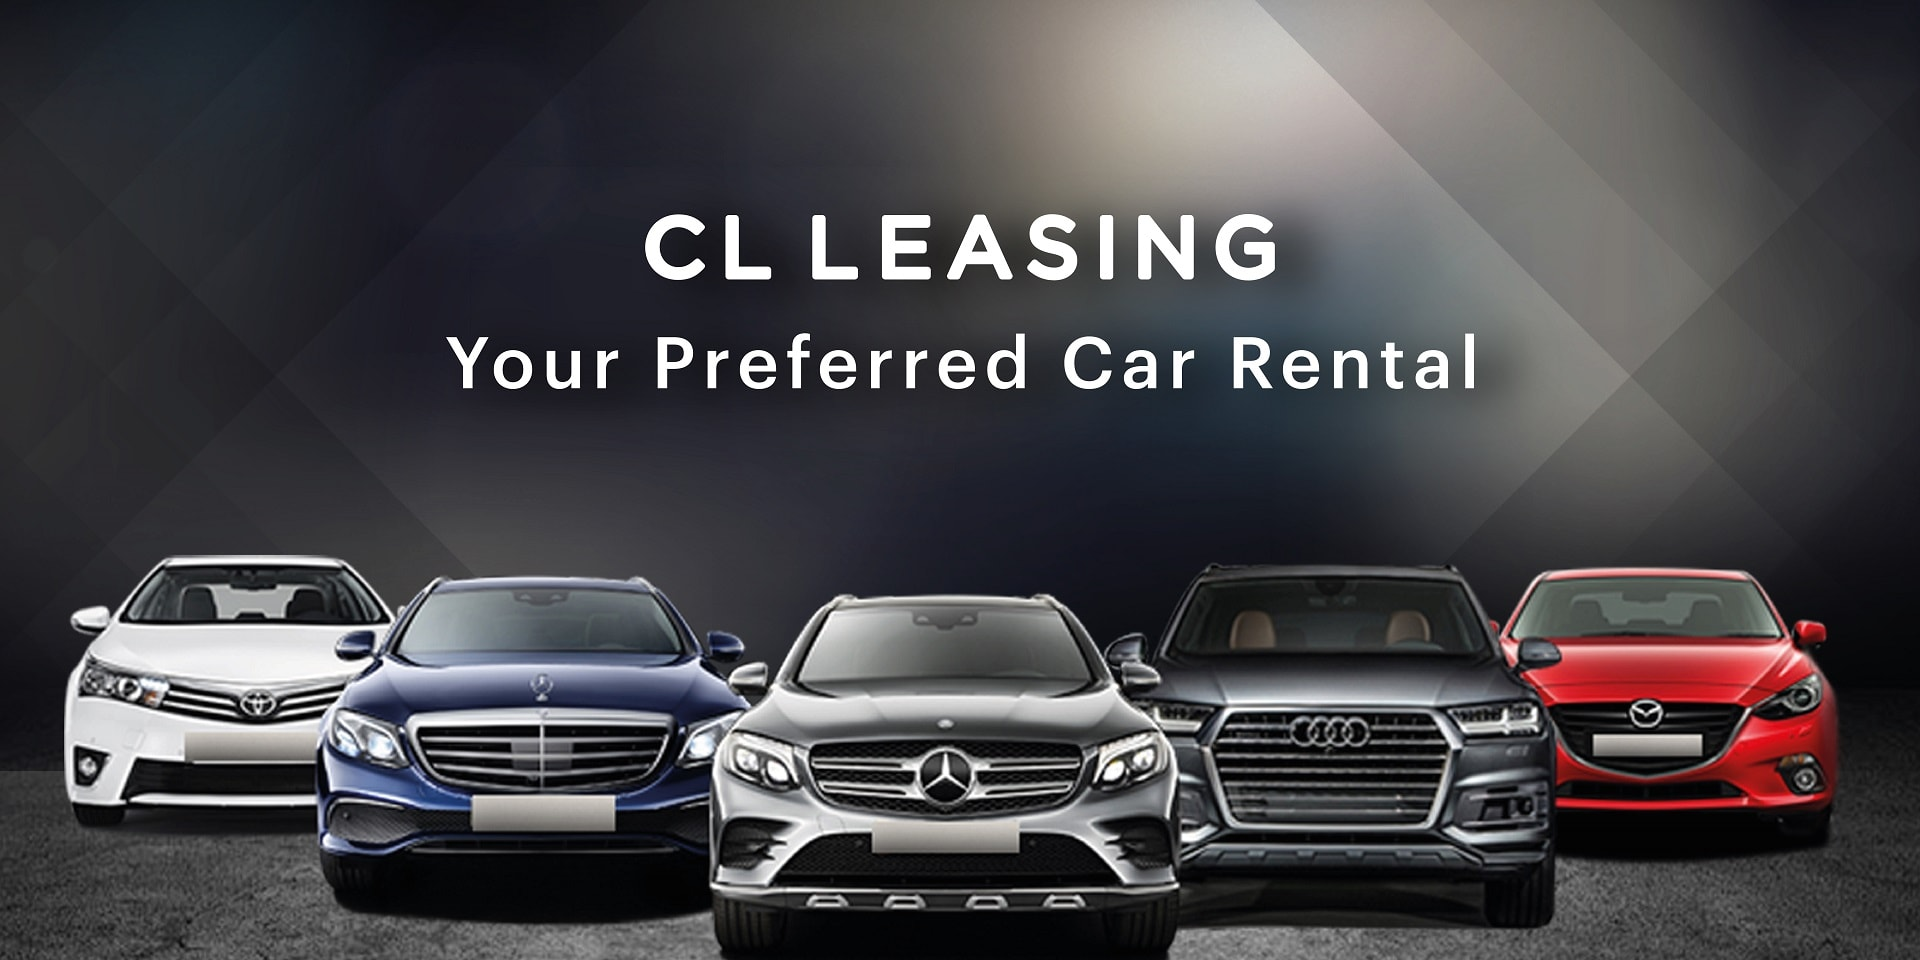 Brand New Cars From Multiple Brands Are Also Within Reach With Our Value For Money Leasing Packages